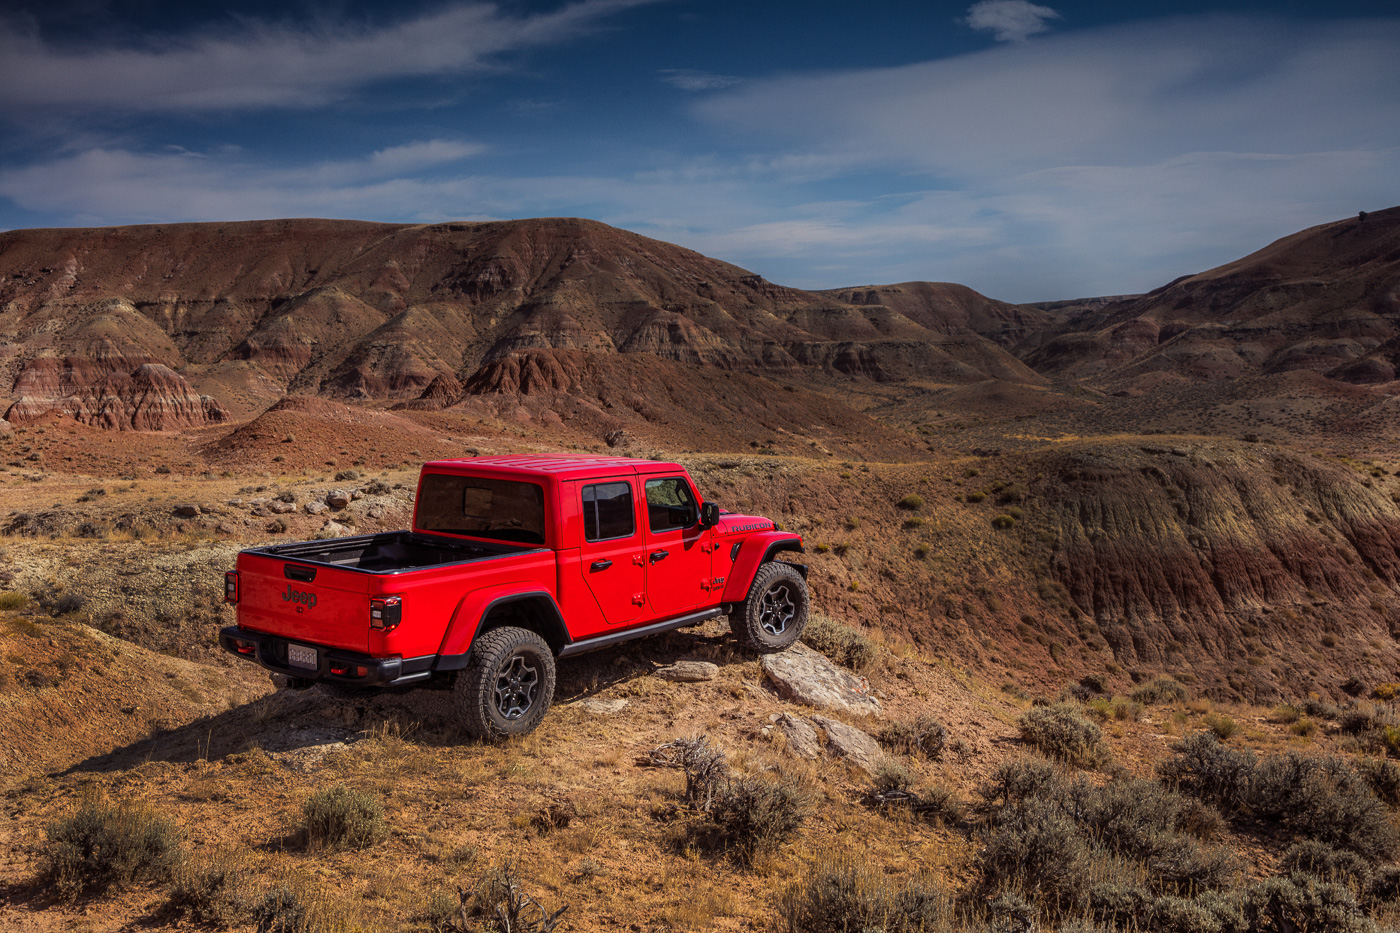 Jeep-Gladiator-Rubicon-122.jpg